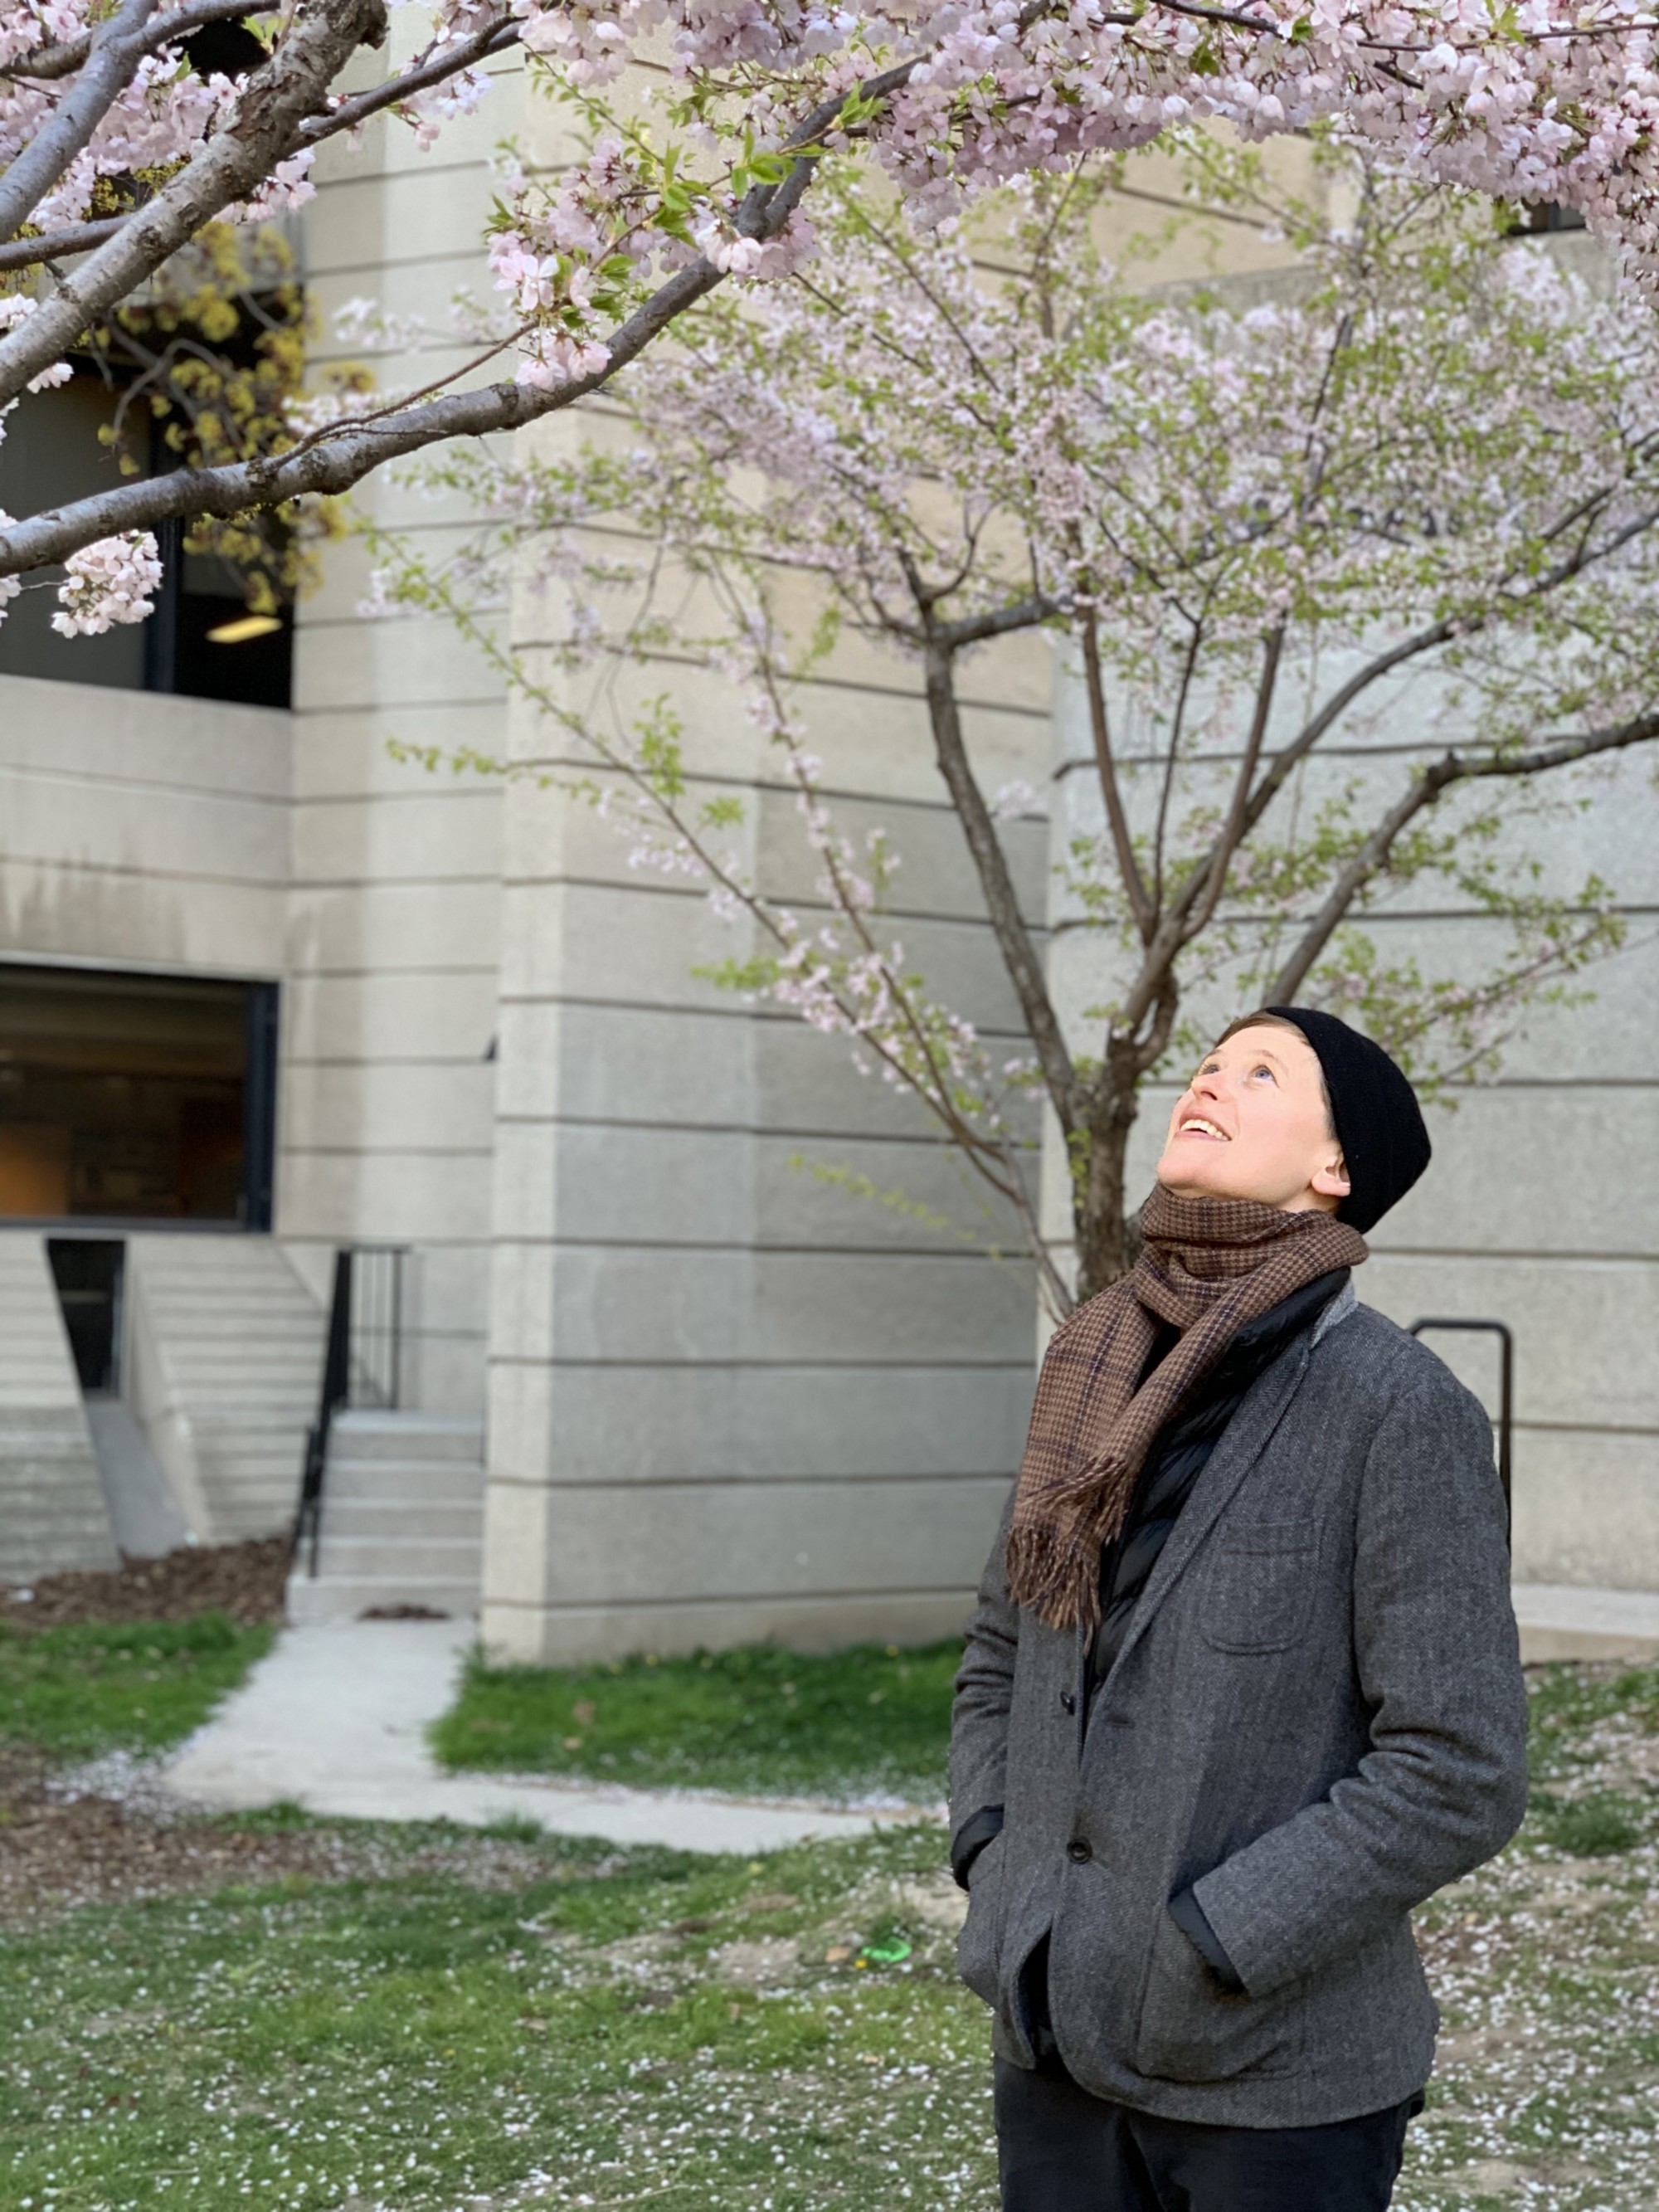 Photo of the poet and writer looking up into the cherry blossom trees. They are wearing a grey jacket and a black hat.